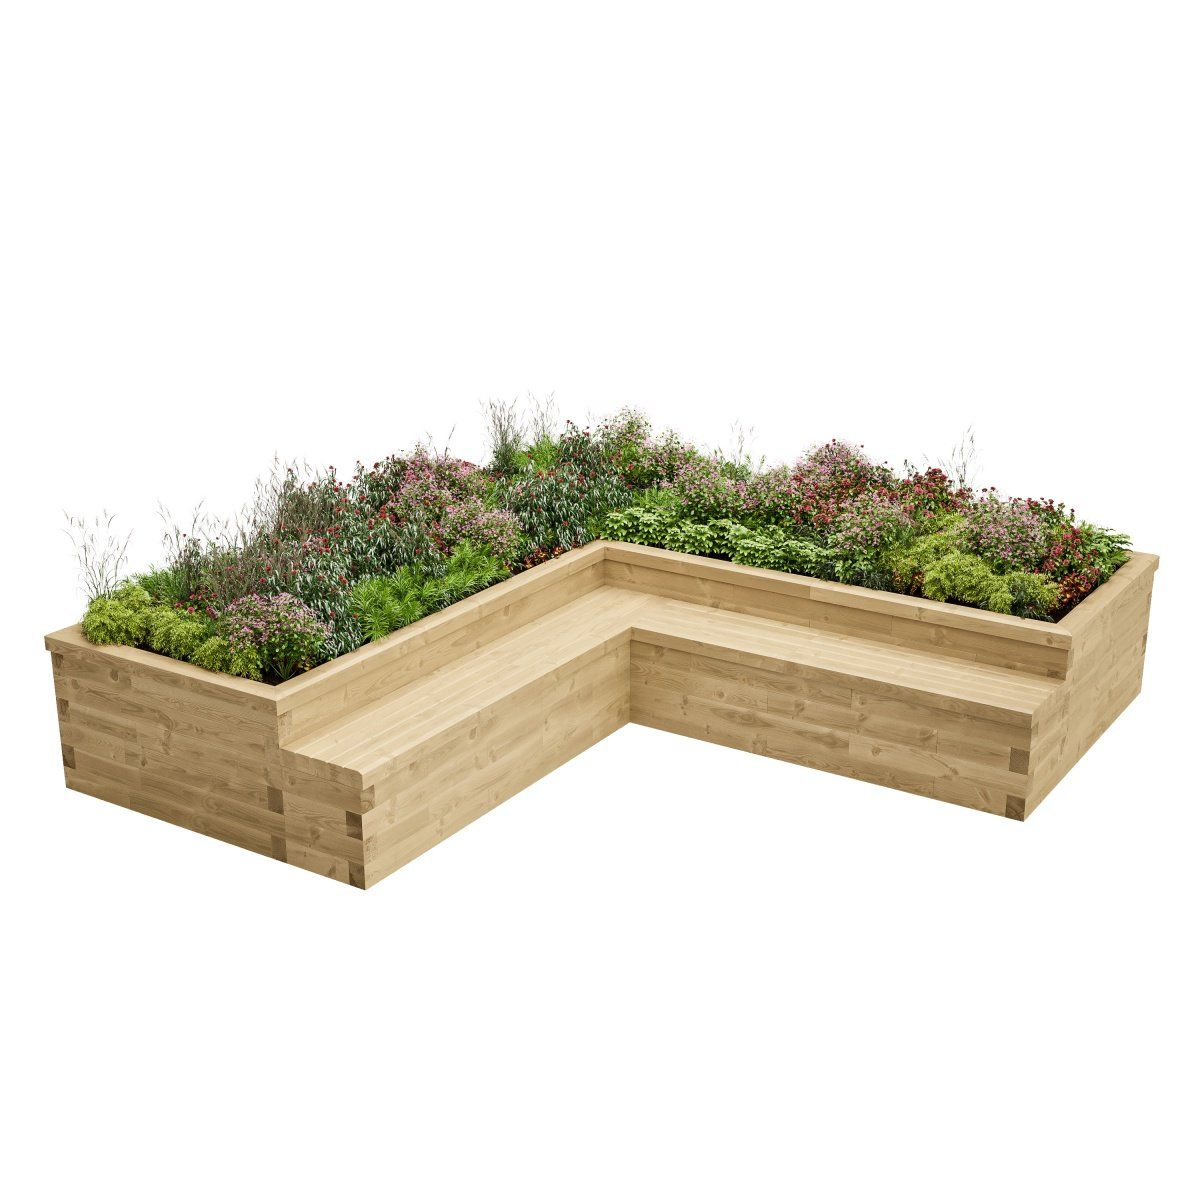 Large L-Shaped Bed with Seating   Garden seating, Diy ... on L Shaped Backyard Layout id=33243